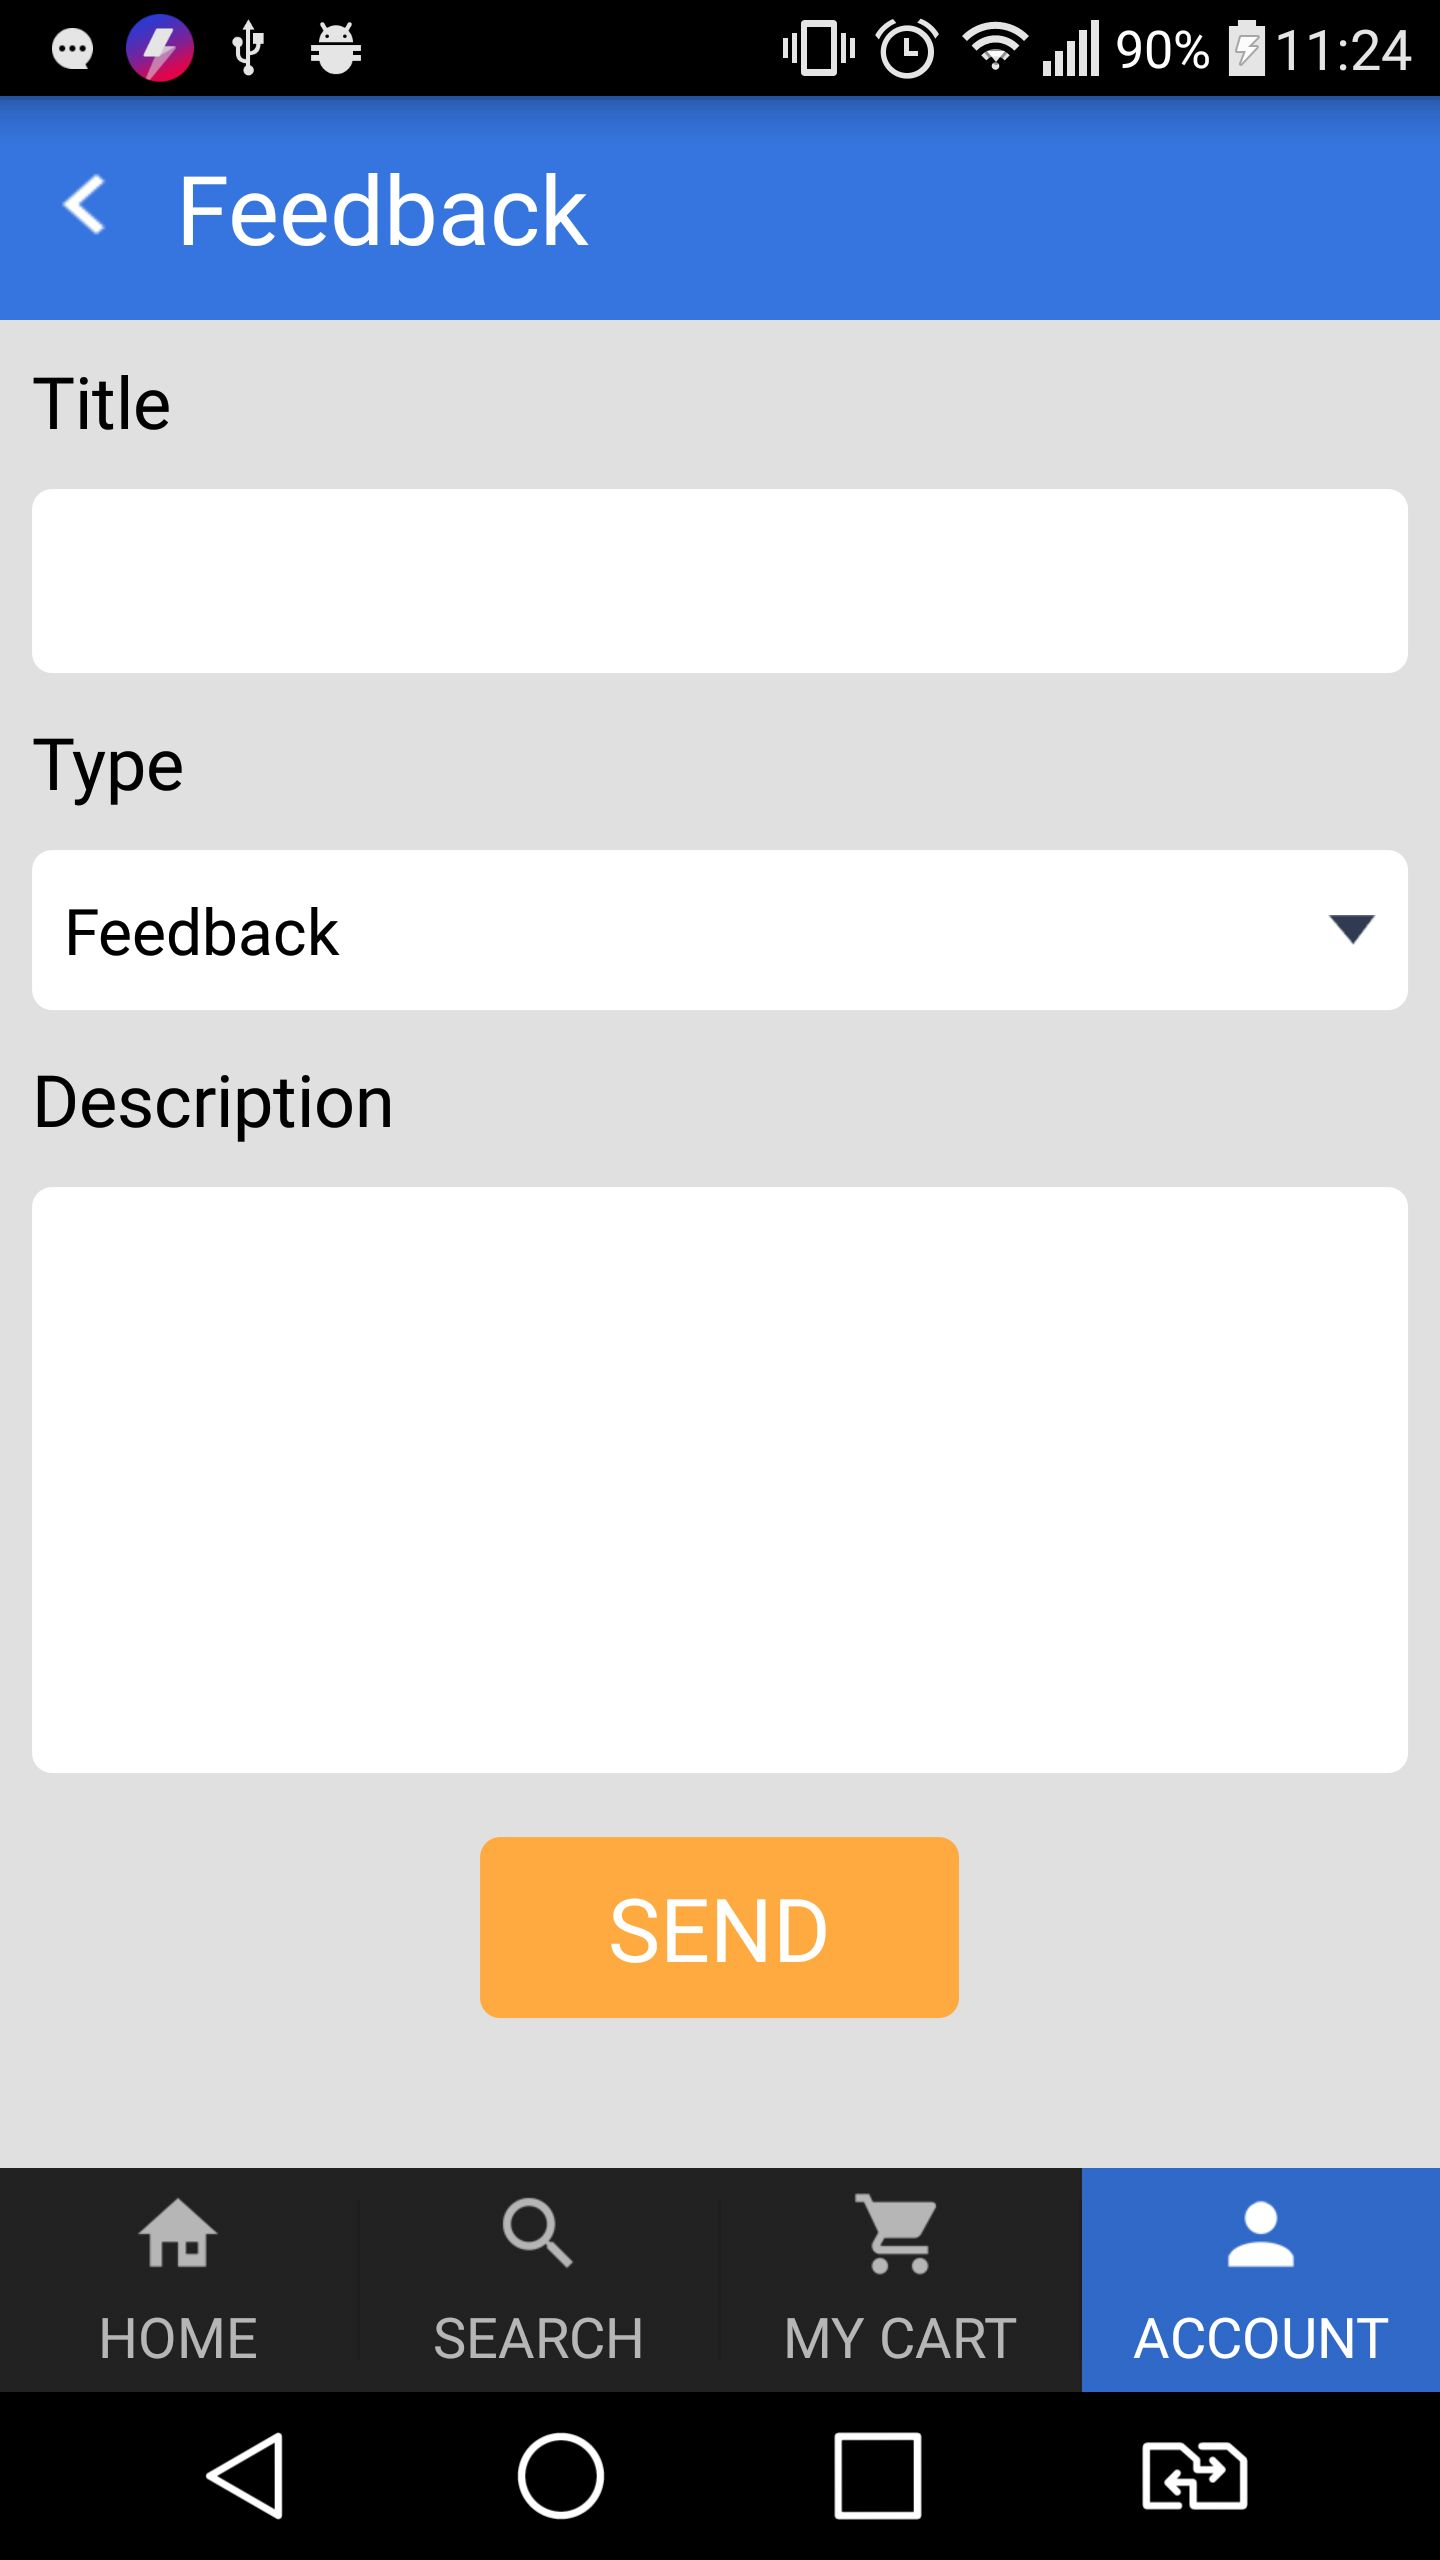 Marketplace - Android App Template Screenshot 12